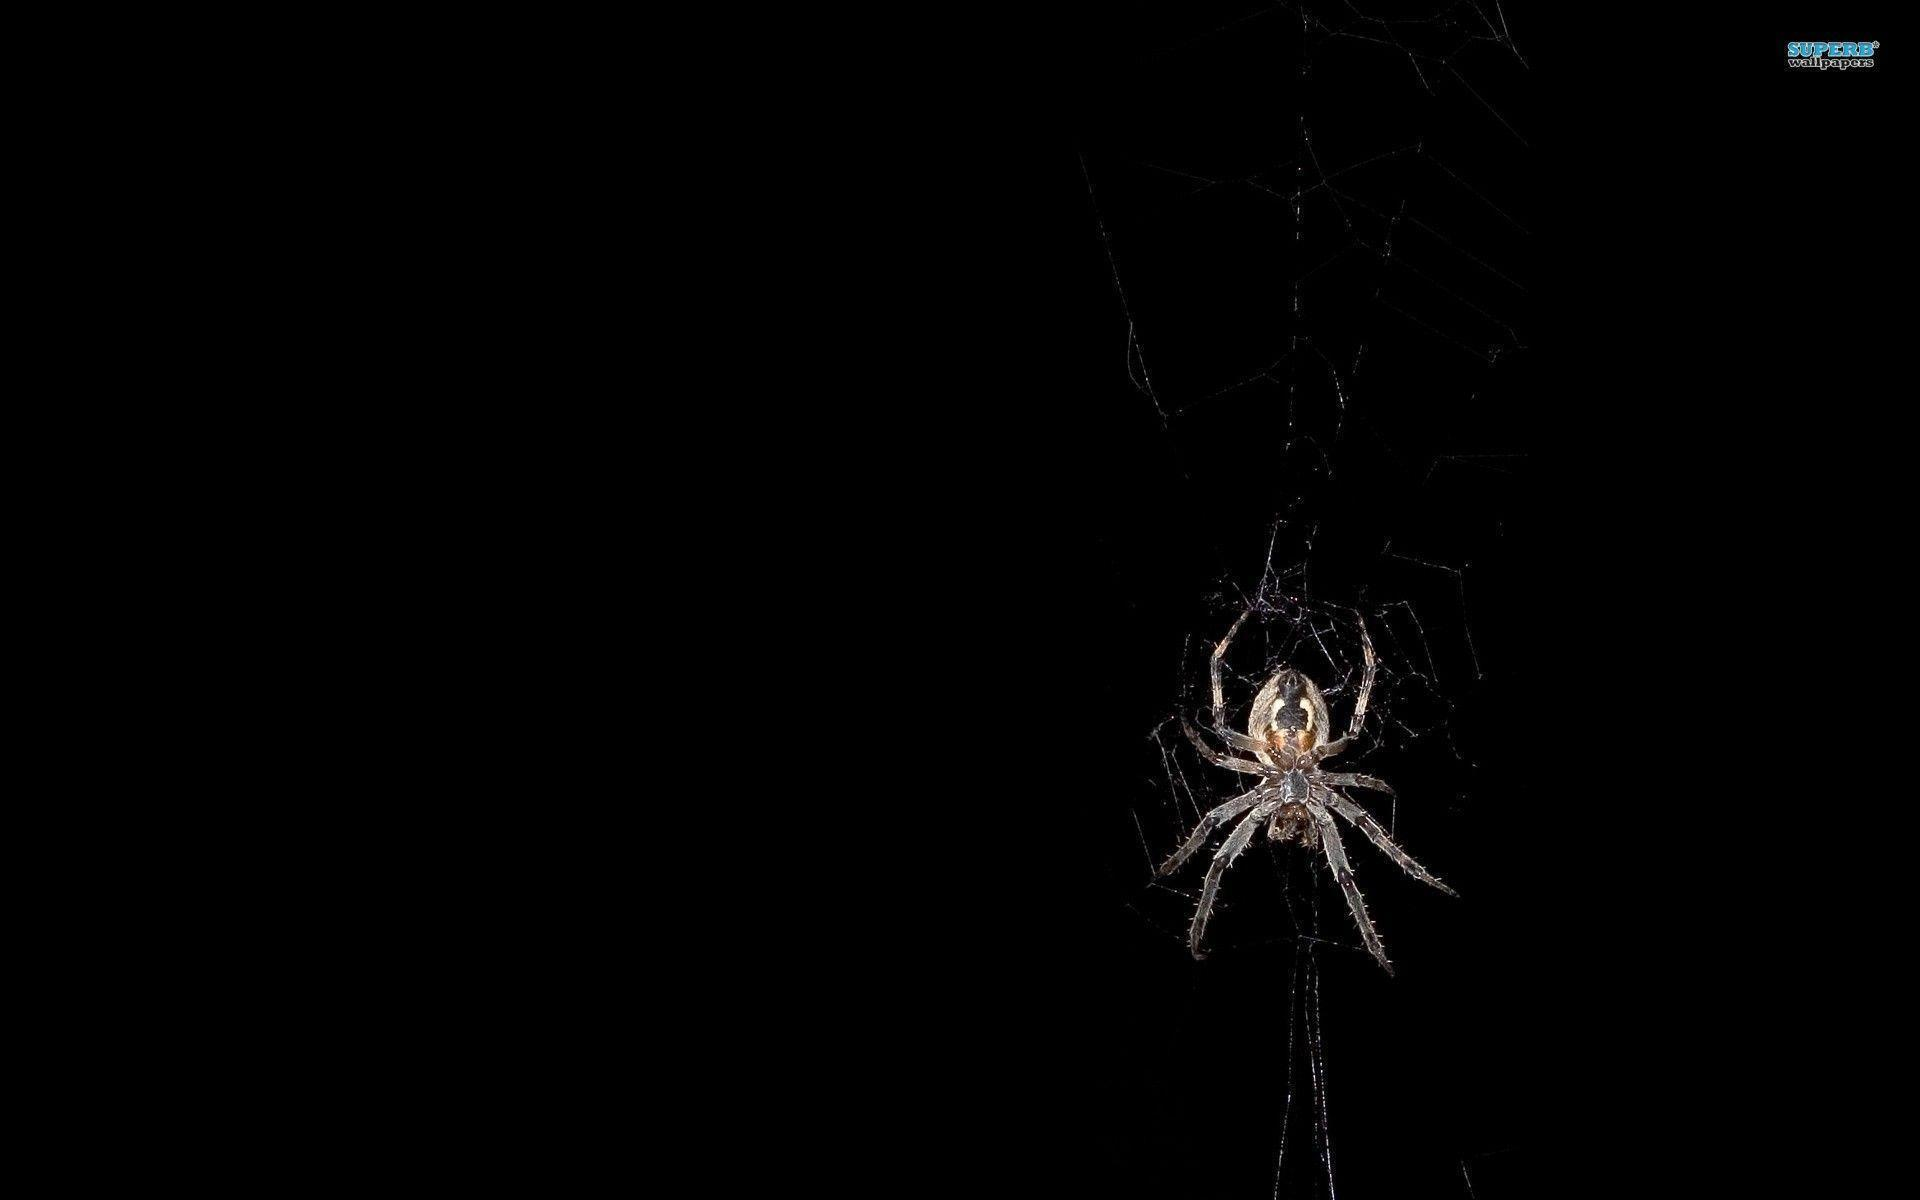 Spider wallpaper - Animal wallpapers - #